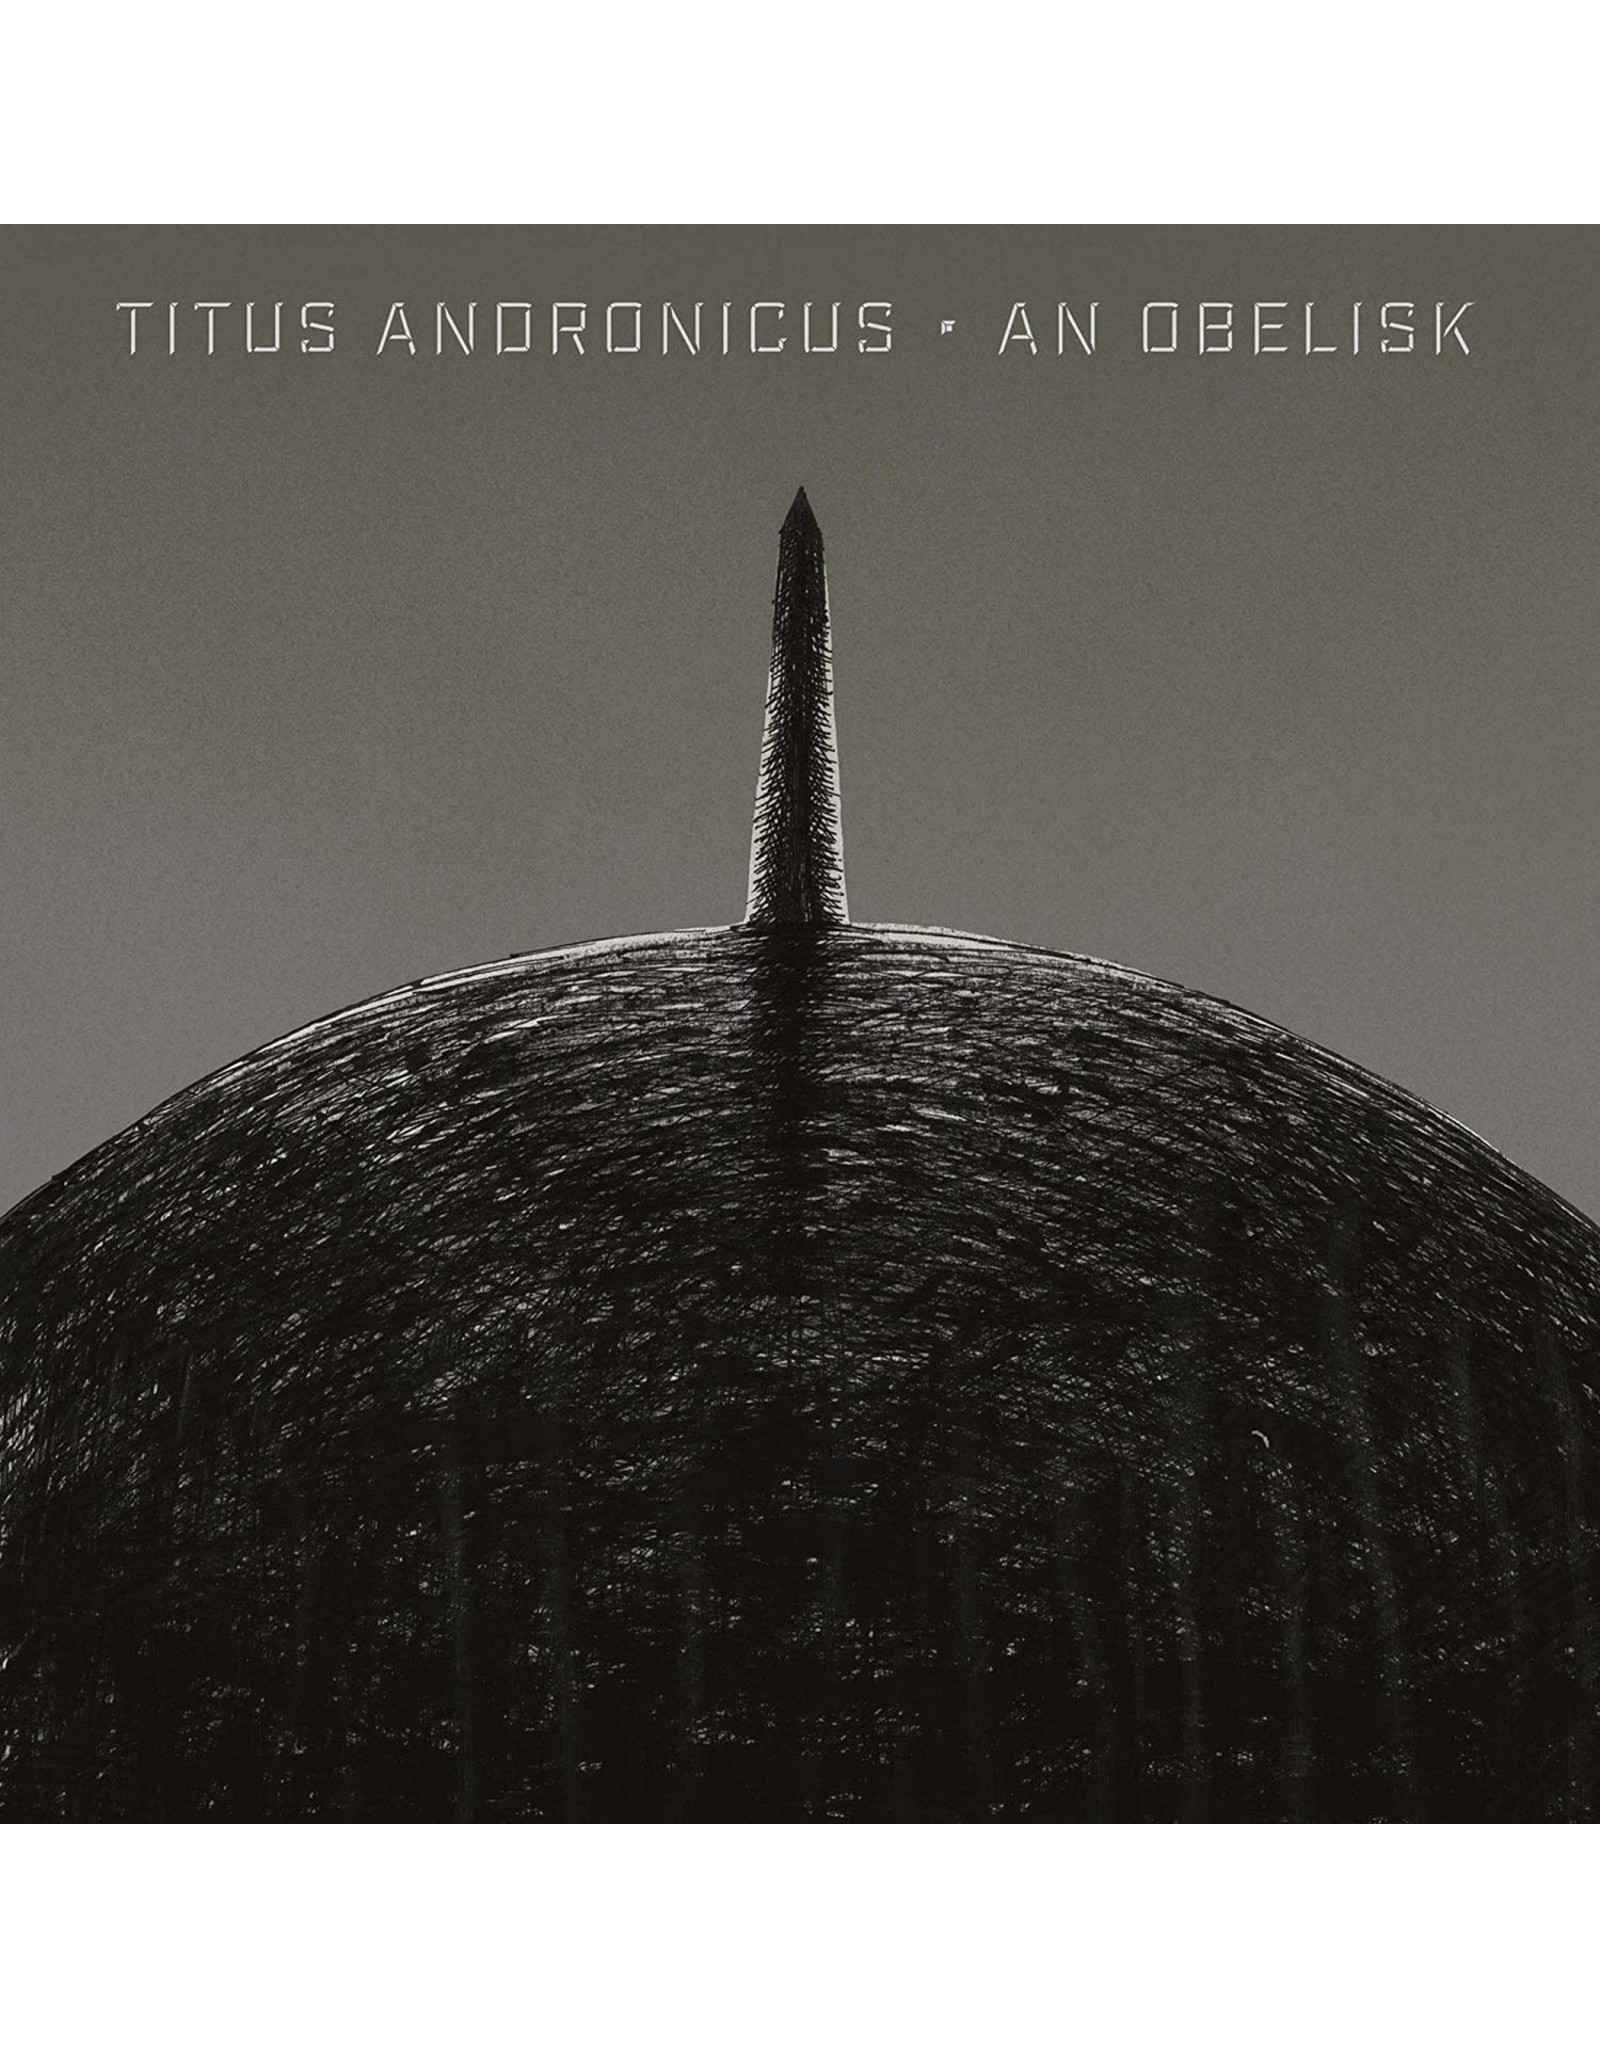 Titus Andronicus - An Obelisk (Ltd. Greyscale) LP